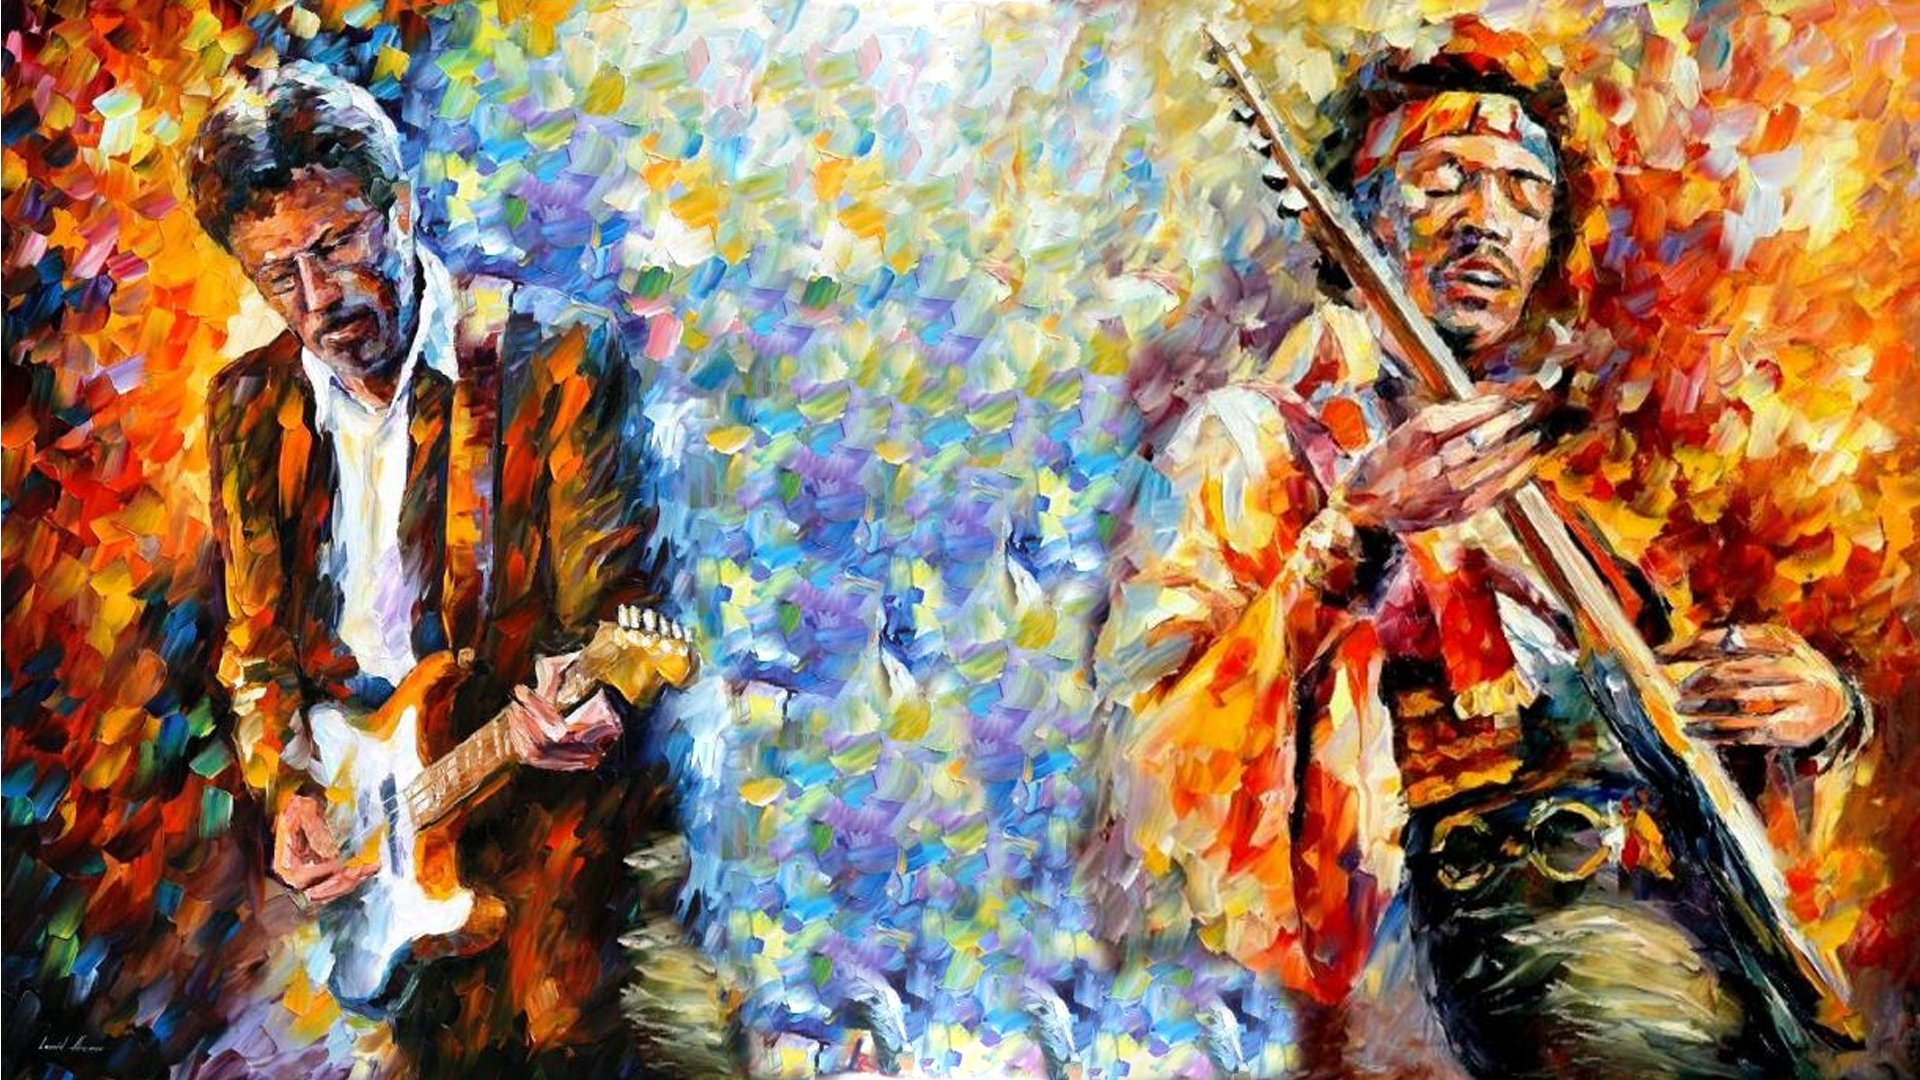 Jimi hendrix full hd wallpaper and background image 1920x1080 id music jimi hendrix wallpaper altavistaventures Gallery